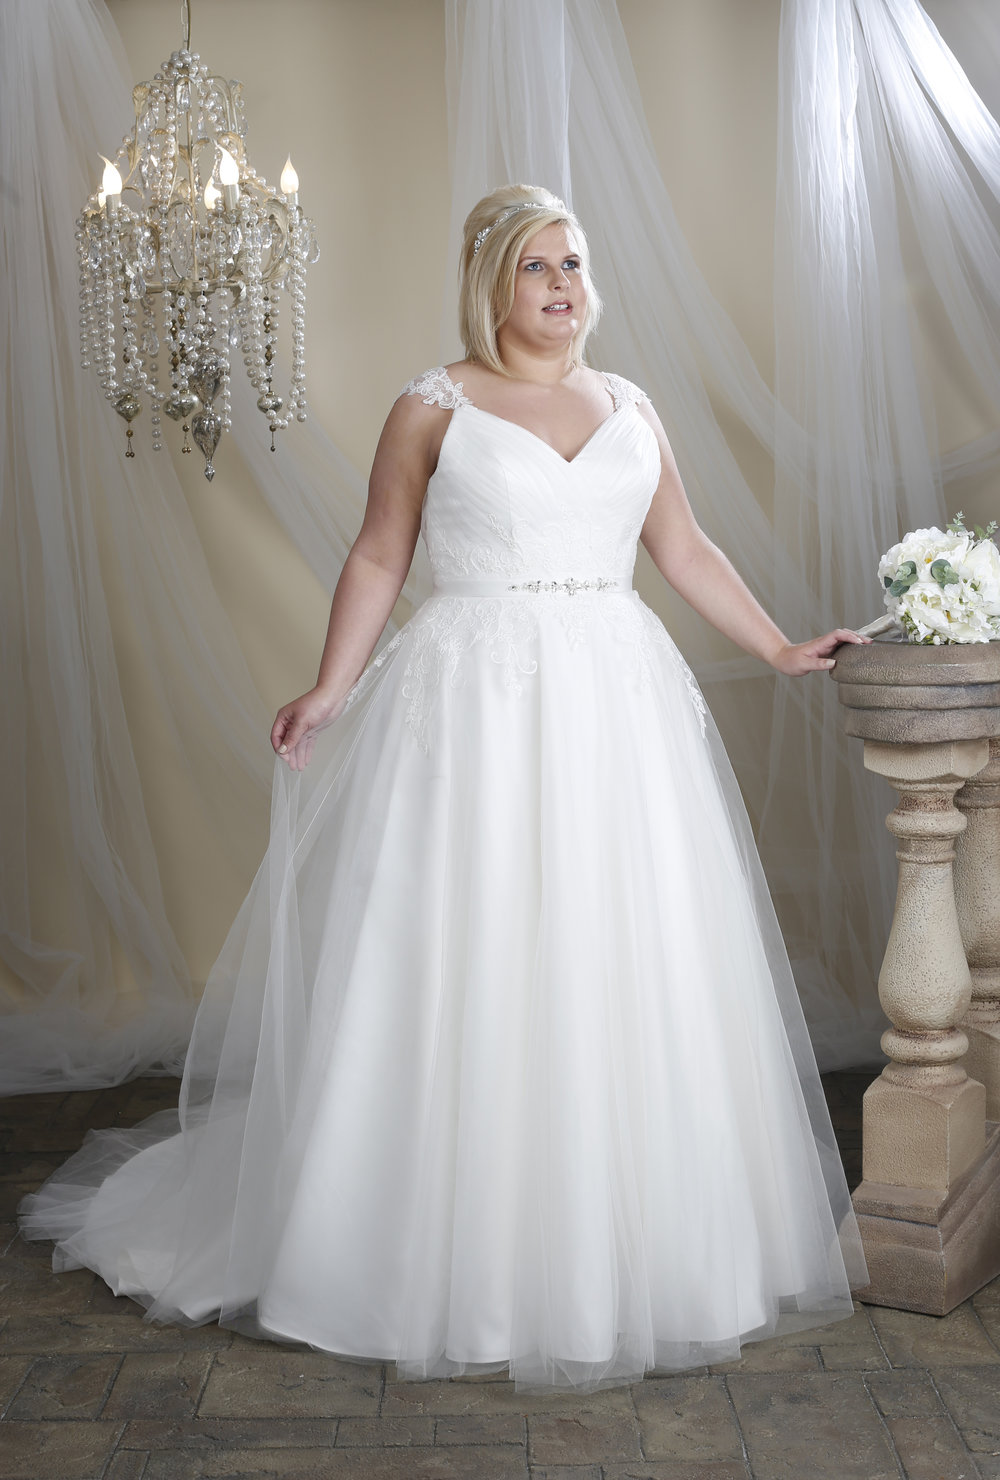 A curvy model wearing a plus size Hilary Morgan wedding dress